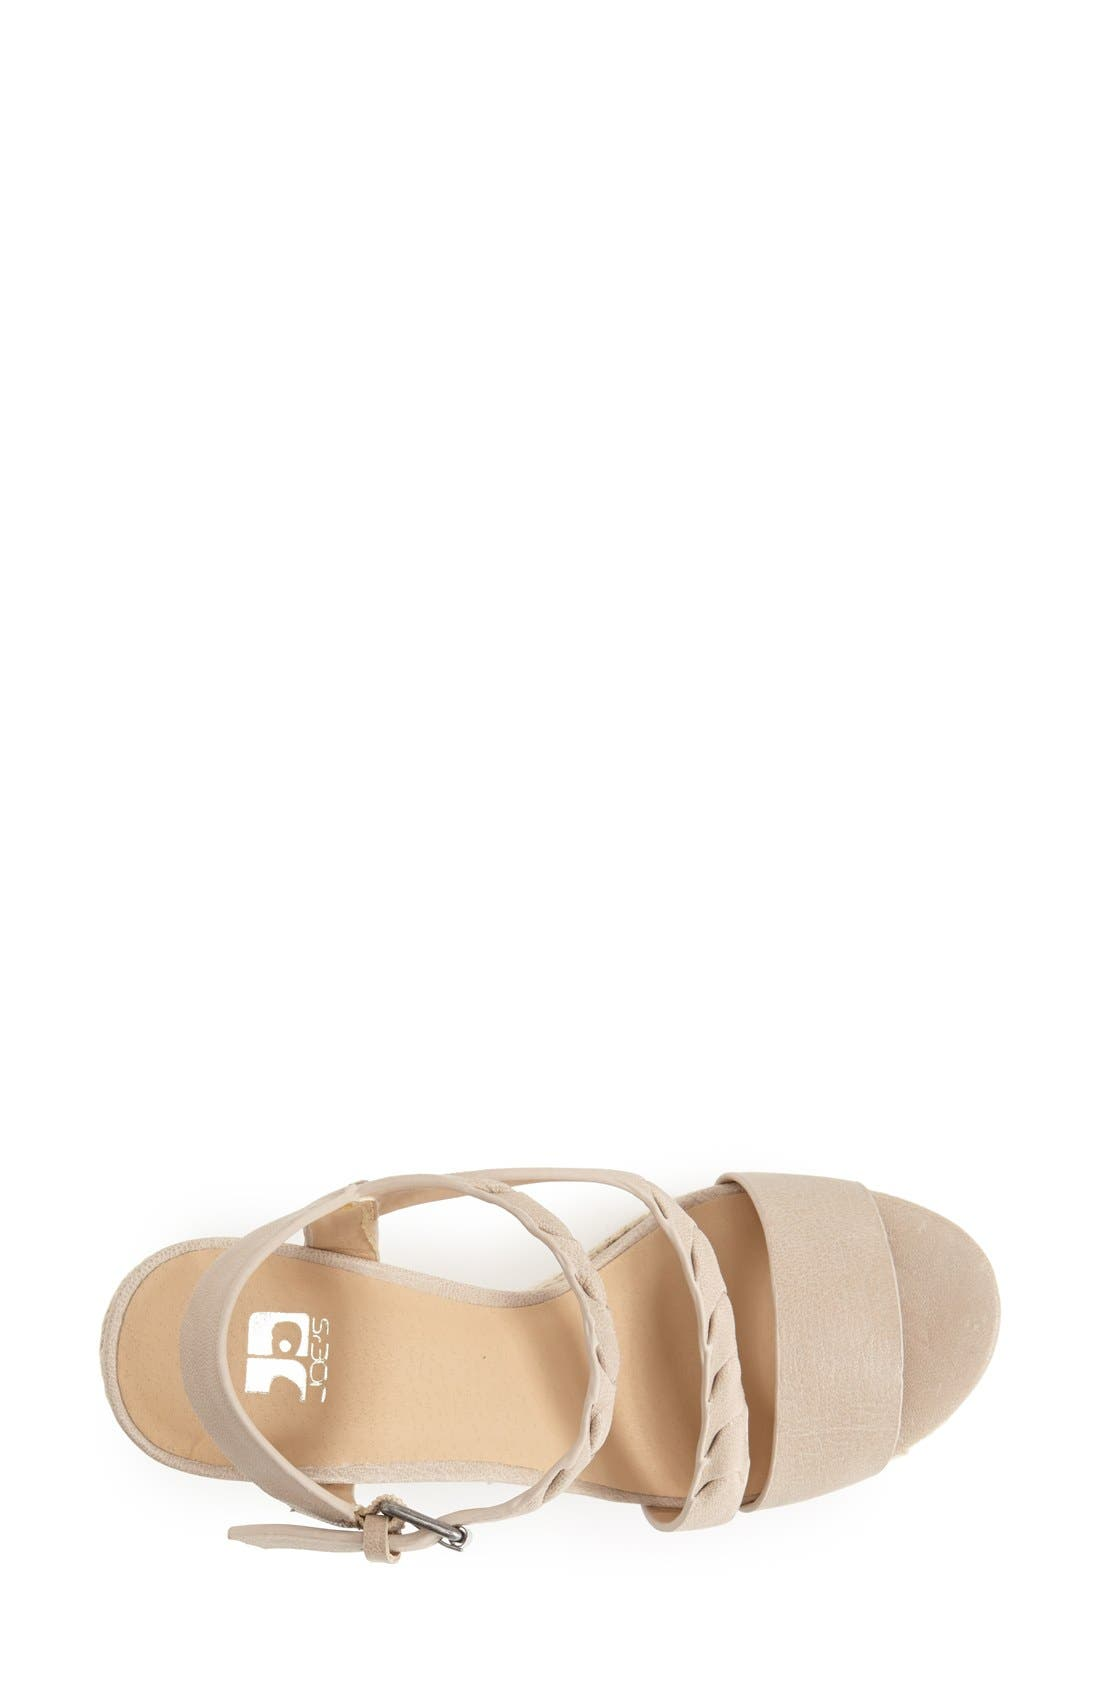 Alternate Image 3  - Joe's 'Rane' Espadrille Wedge Sandal (Women)